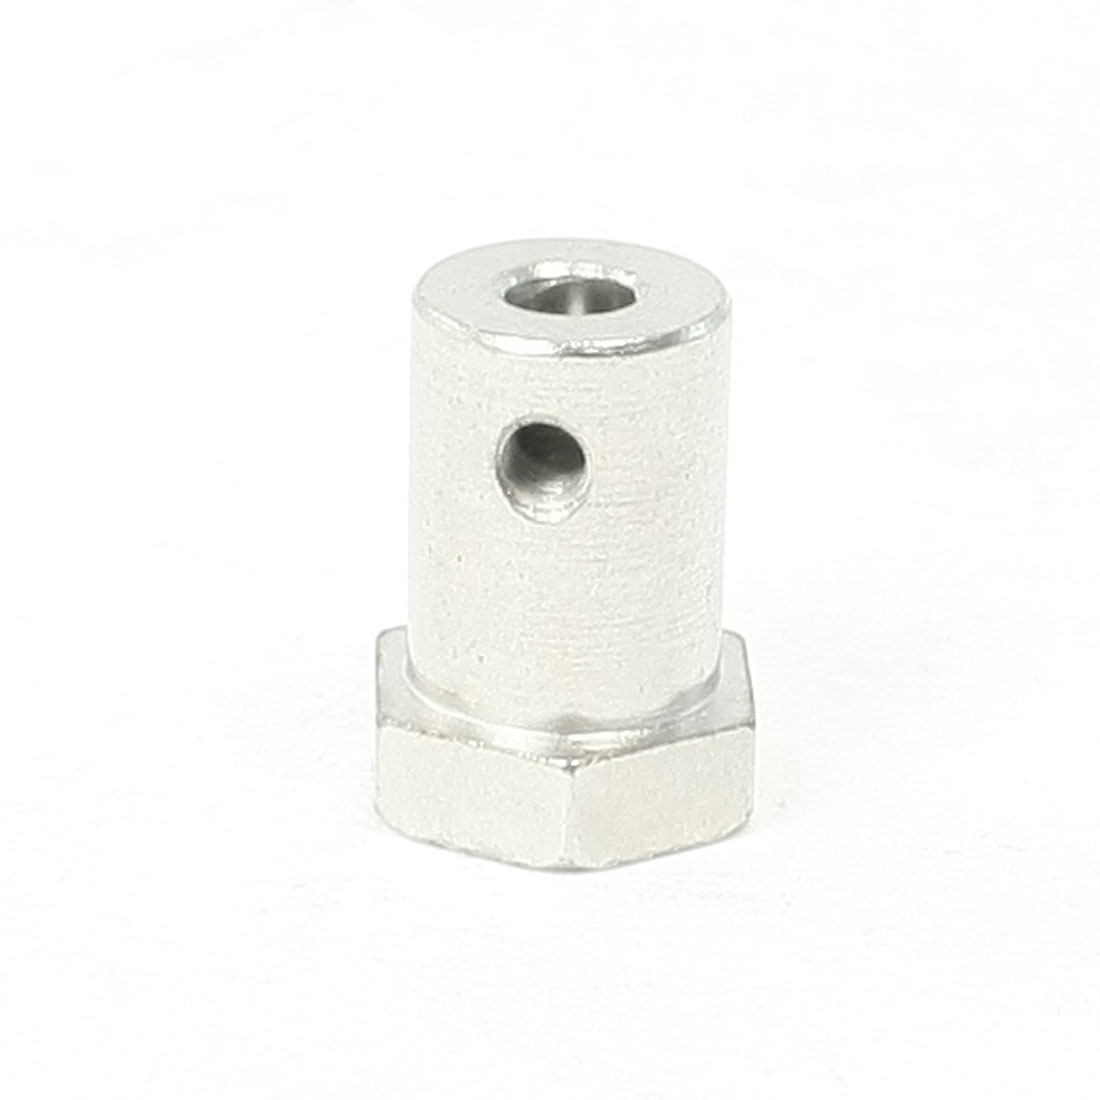 Robot Motor Wheel Coupling Coupler Connector 3.5mm Bore